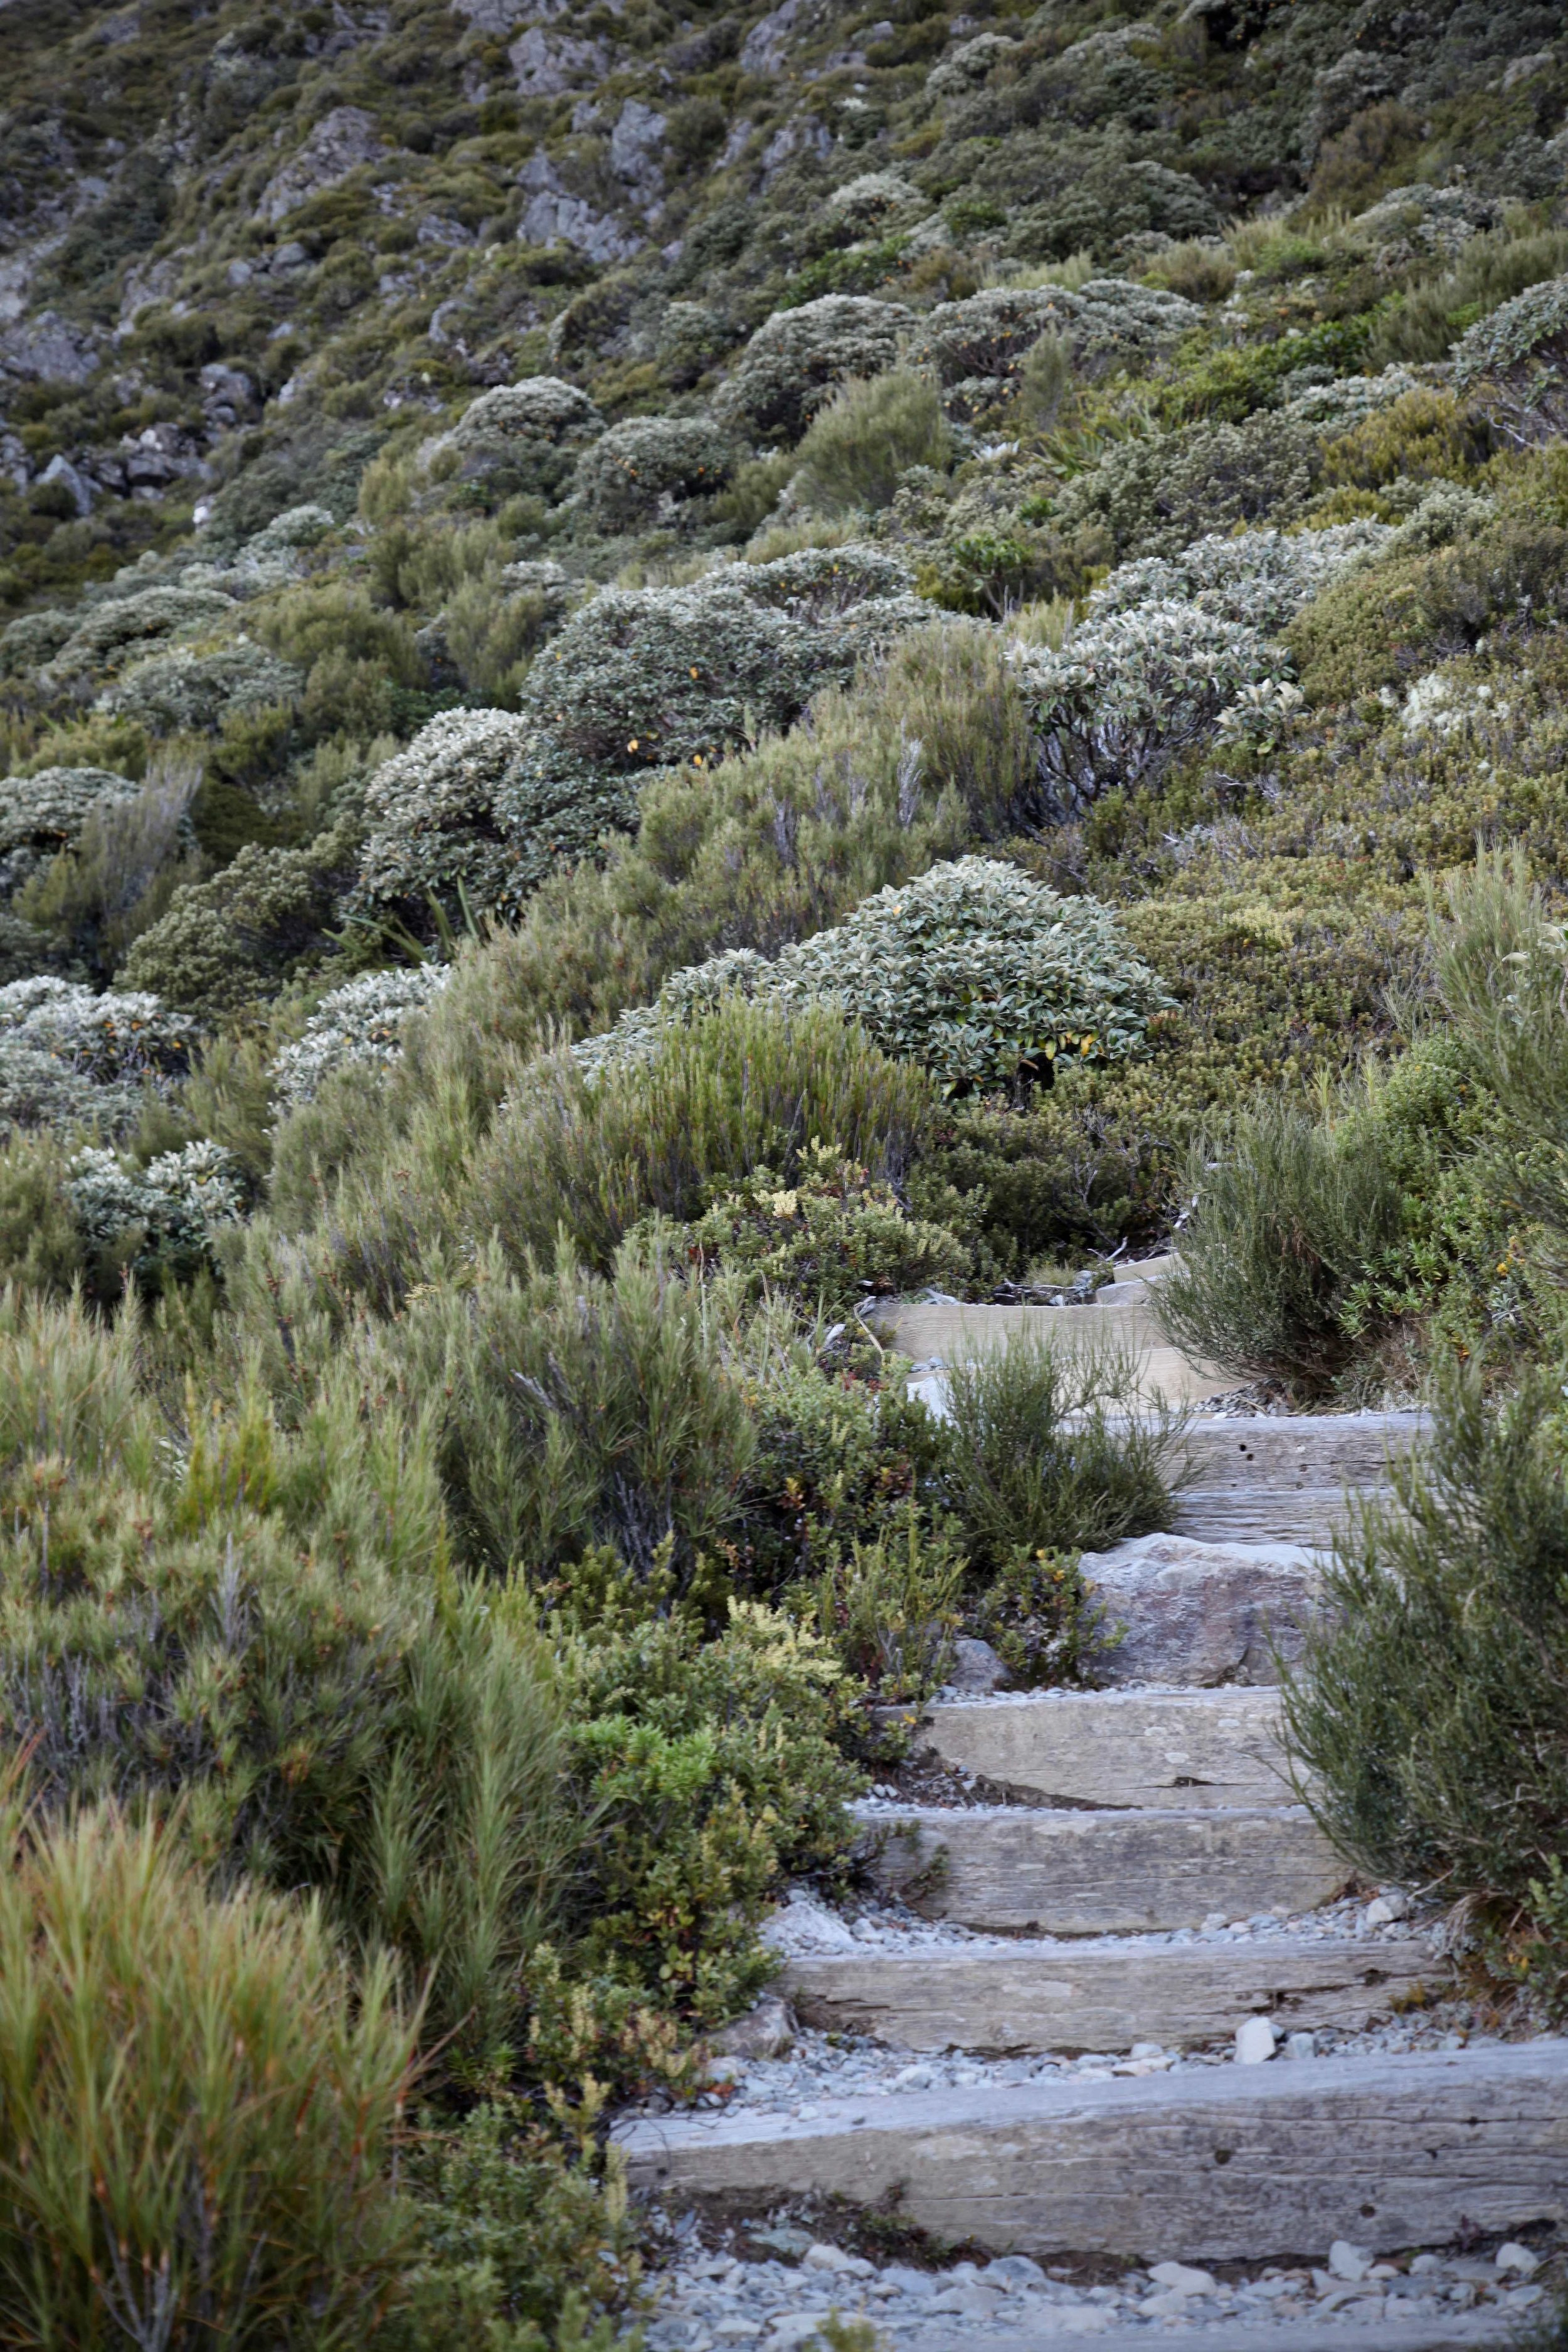 Just a few of the thousands of steps on the Sealy Tarns track.